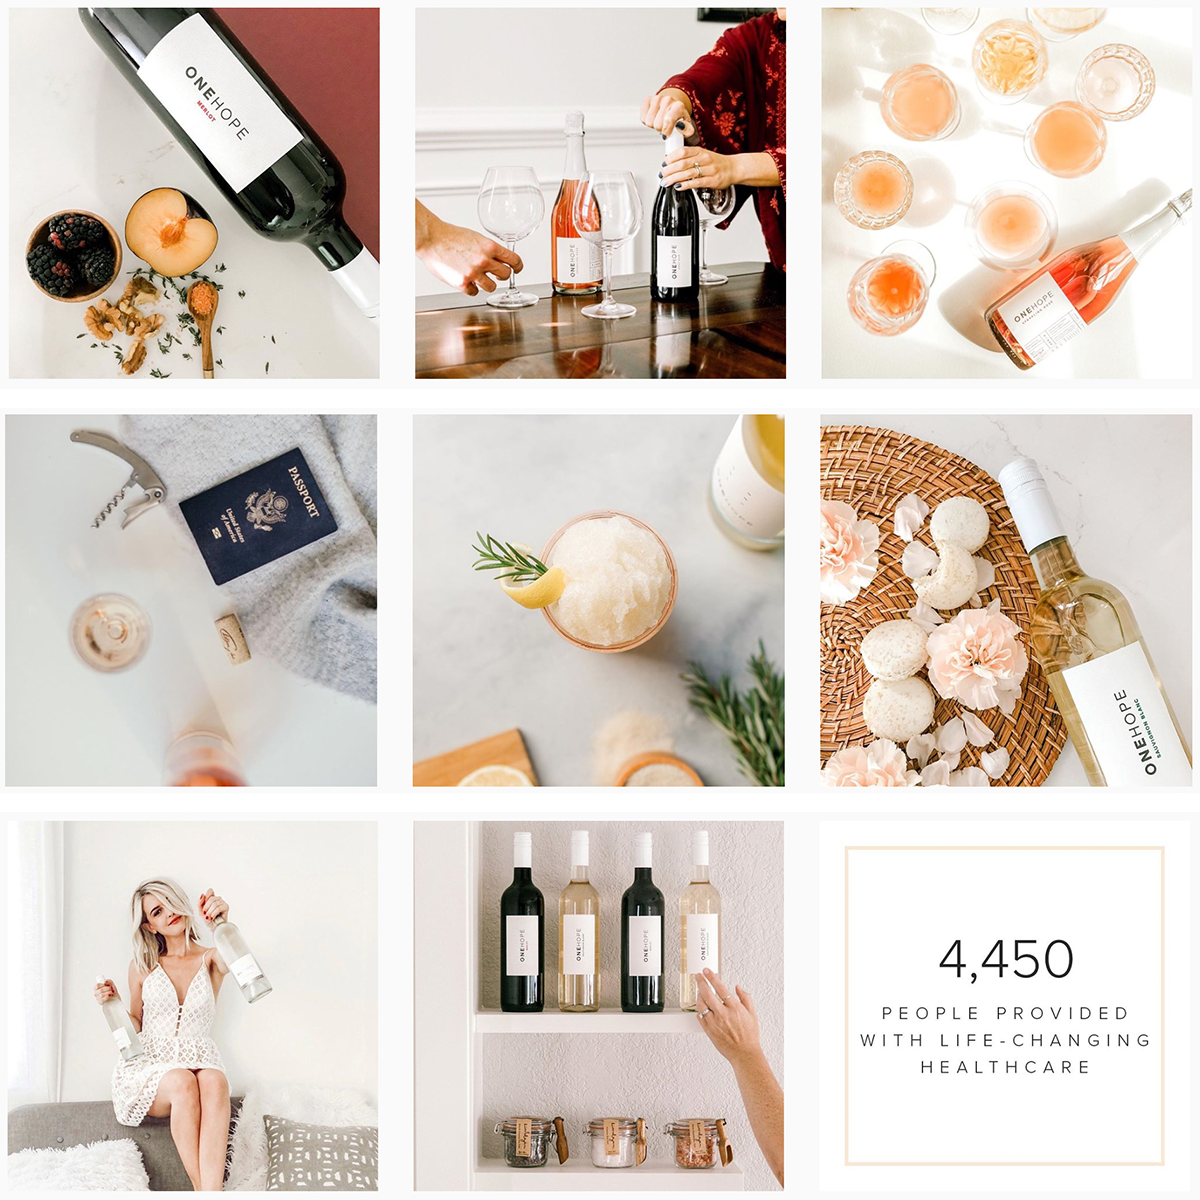 sourced-co-custom-photography-for-social-media-one-hope-wine-2.png